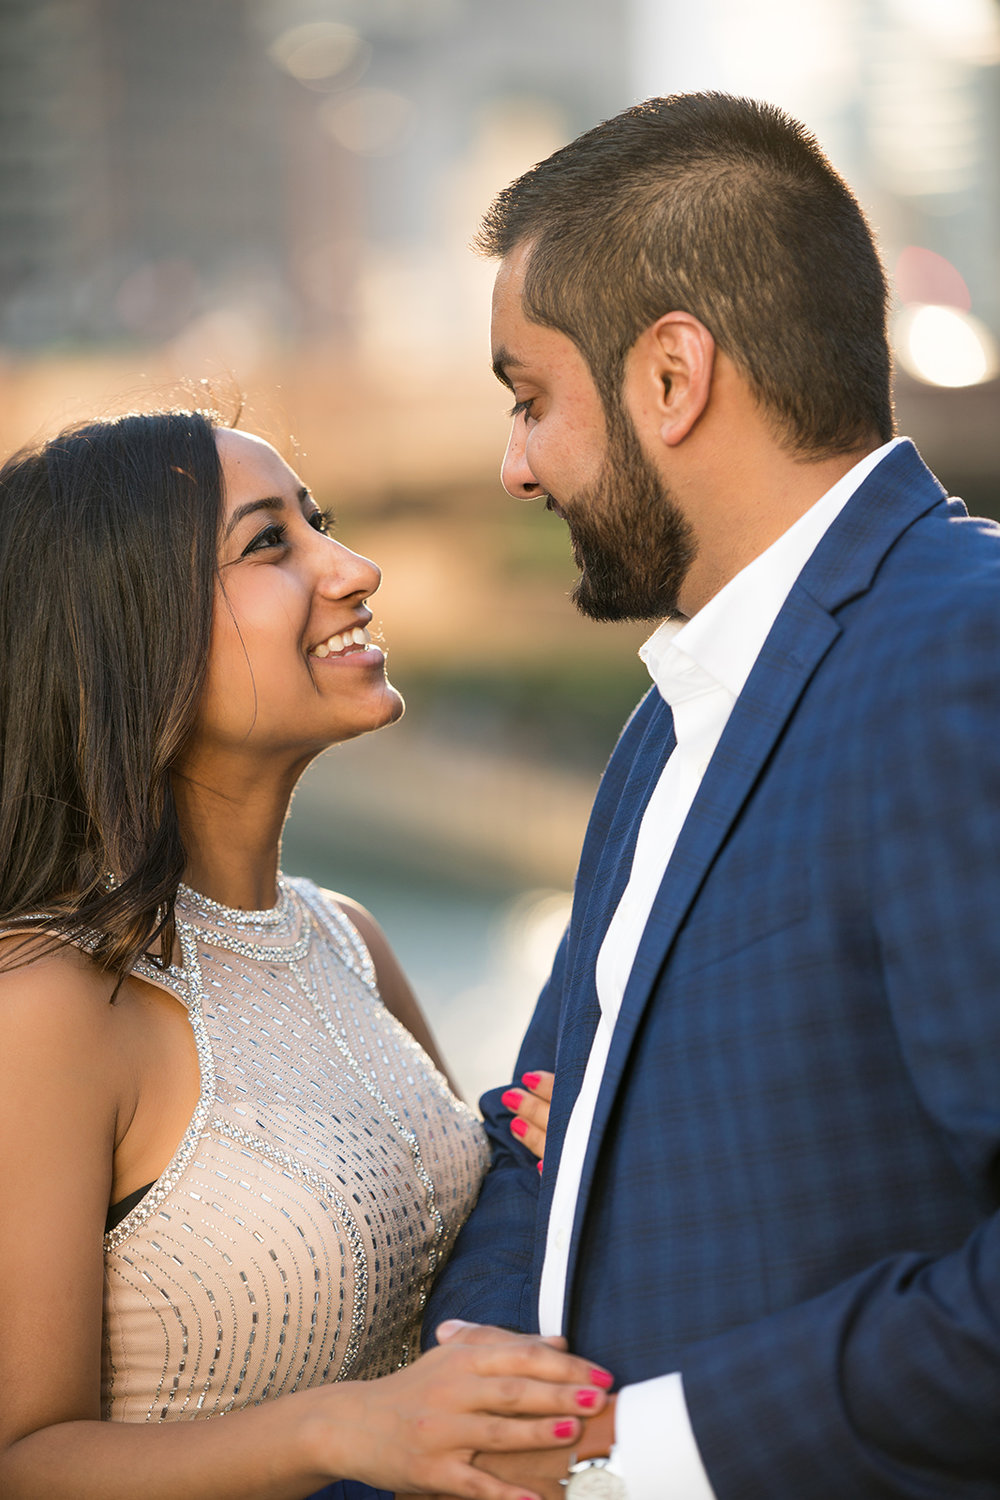 Le Cape Weddings - Chicago Engagement Session - Rina and Manan -48.jpg